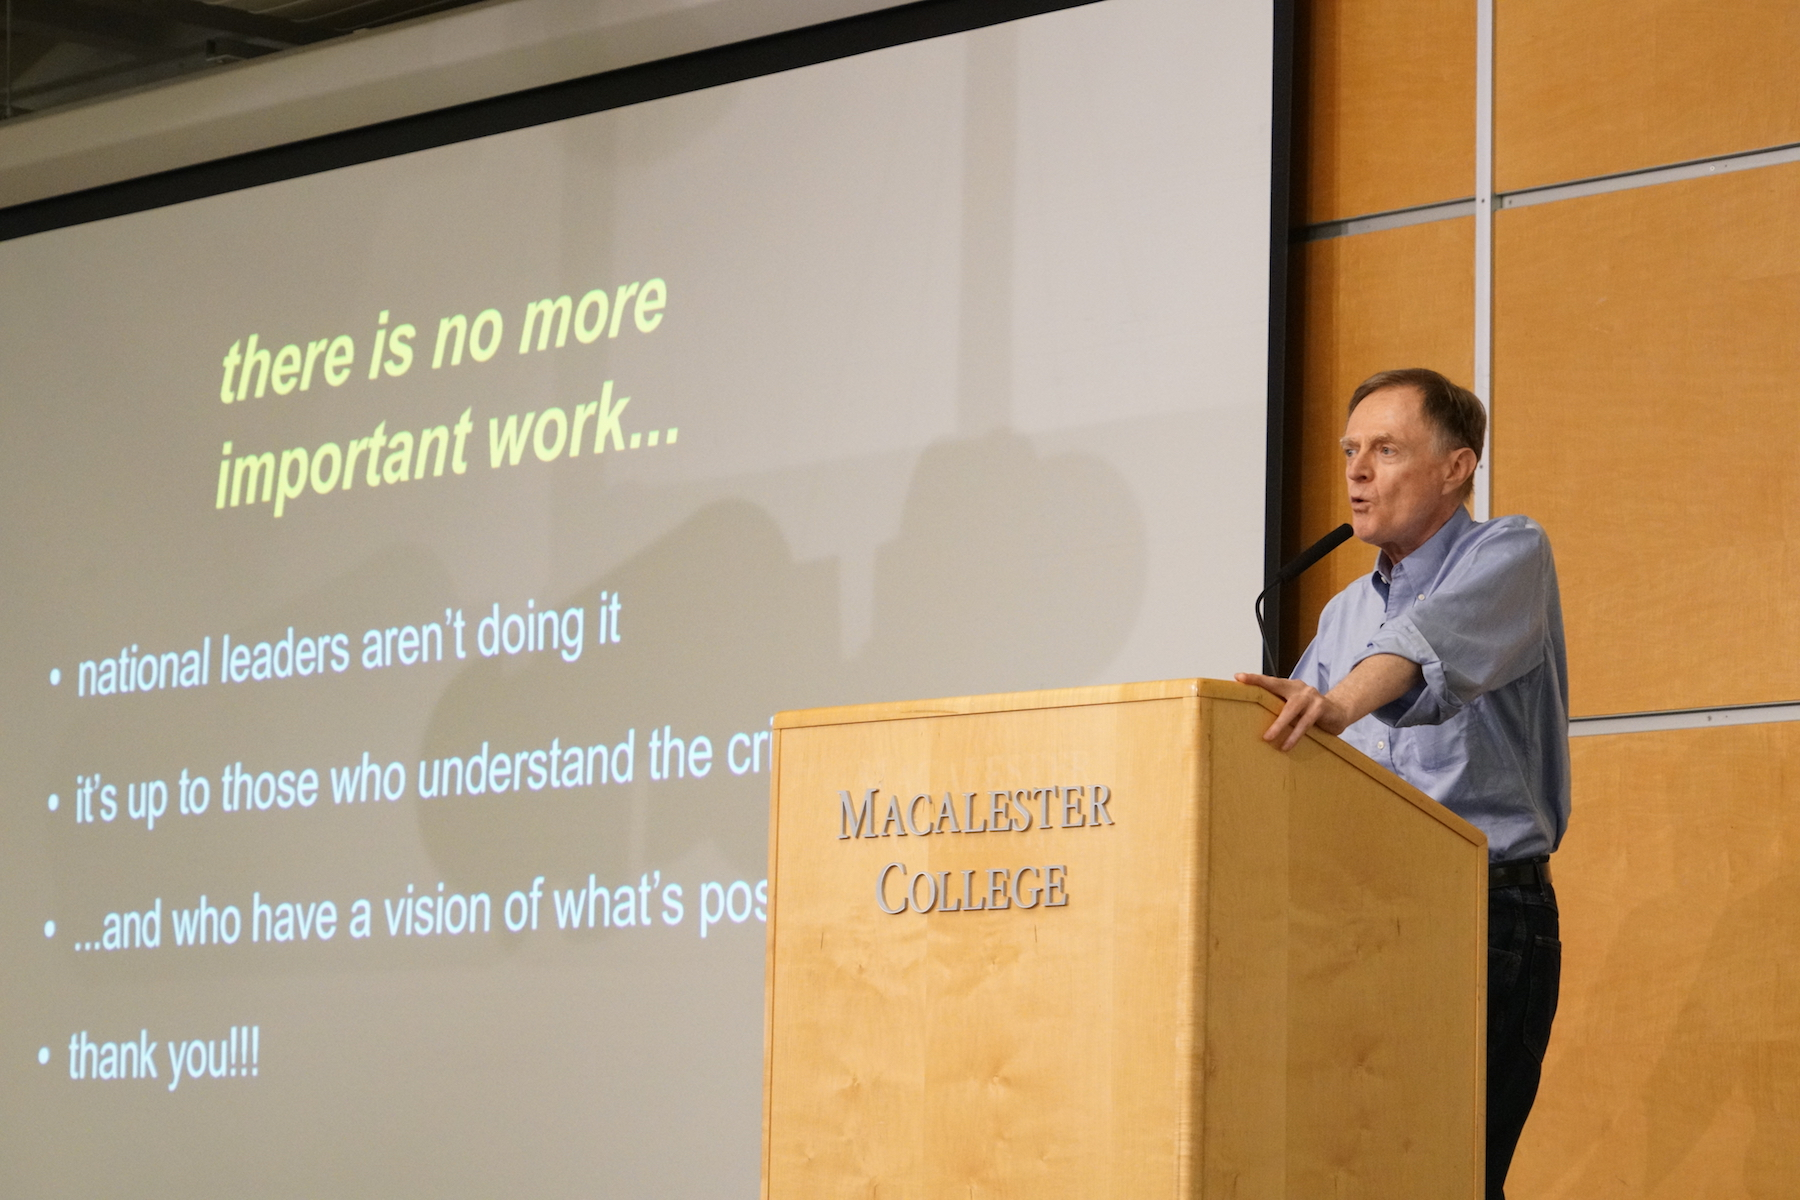 Keynote speaker Richard Heinberg assures us there is no more important work than Transition. Photo by Teresa Konechne.